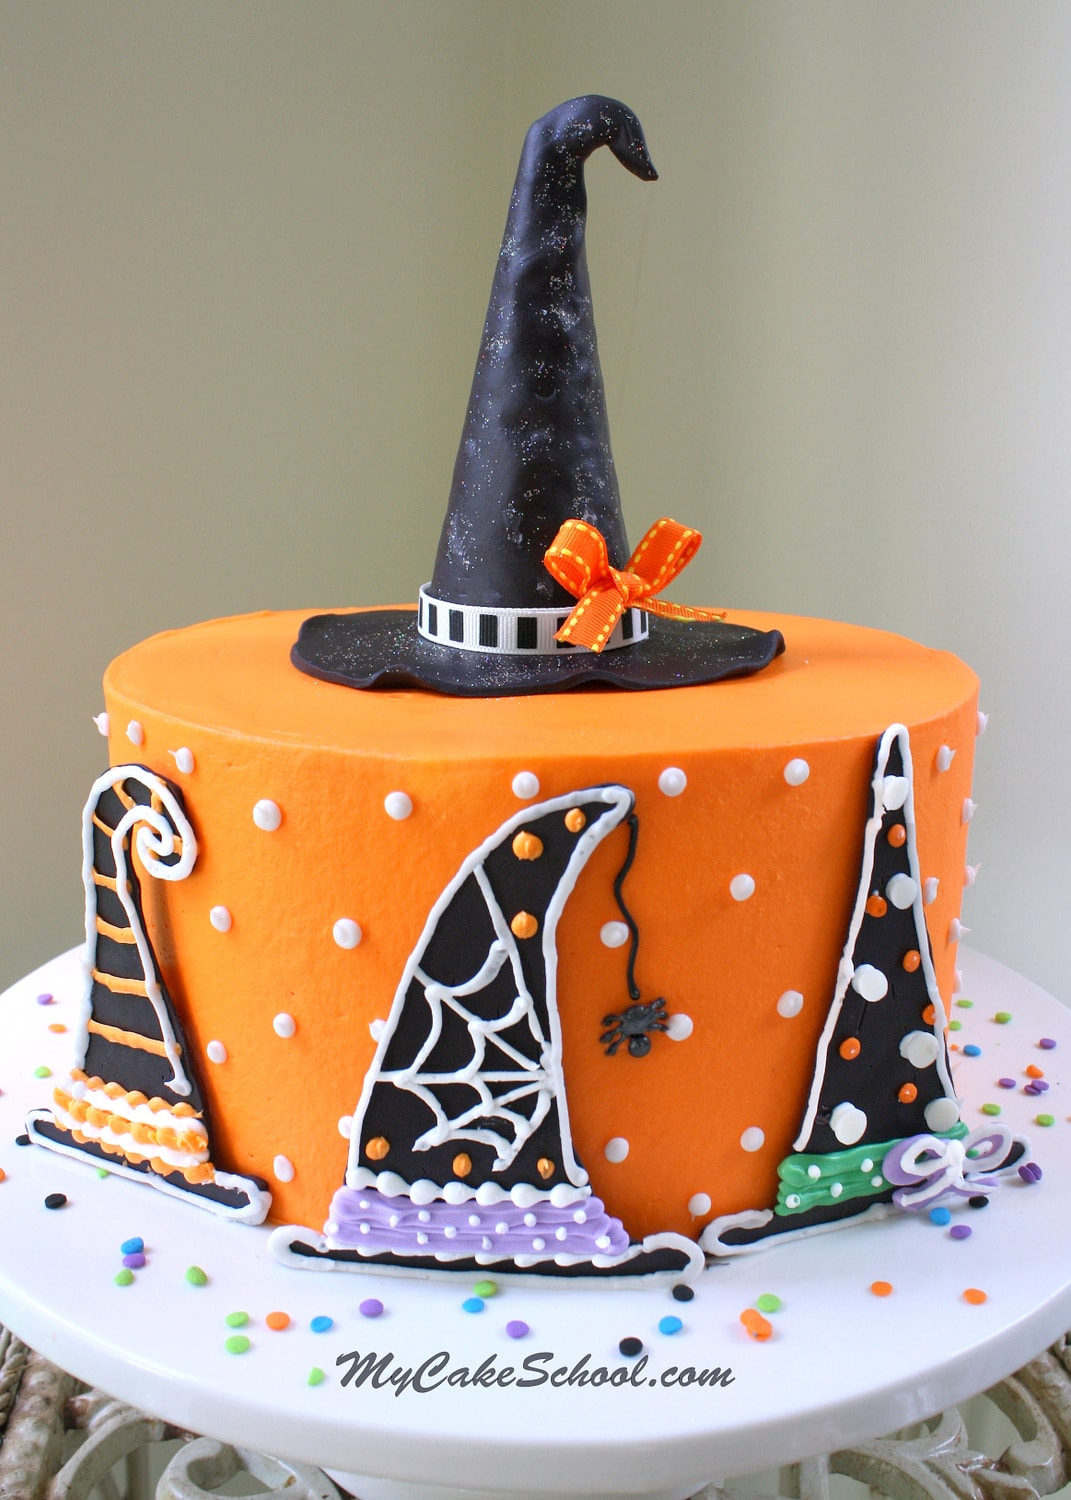 Blogs About Cake Decorating : Witch Hats!- A Halloween Cake Decorating Tutorial My ...